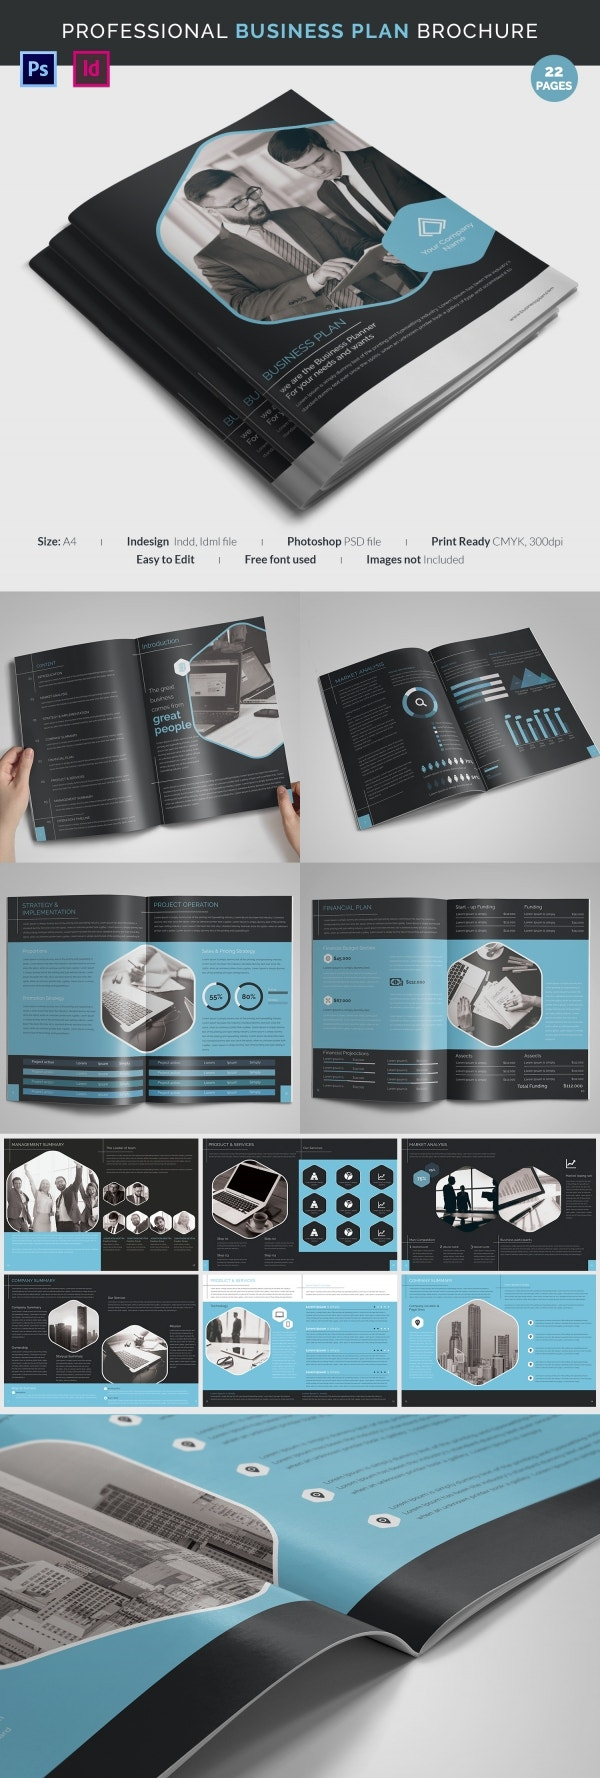 Best Business Marketing Plan Template - 20+ Free PSD, ESI Format ...